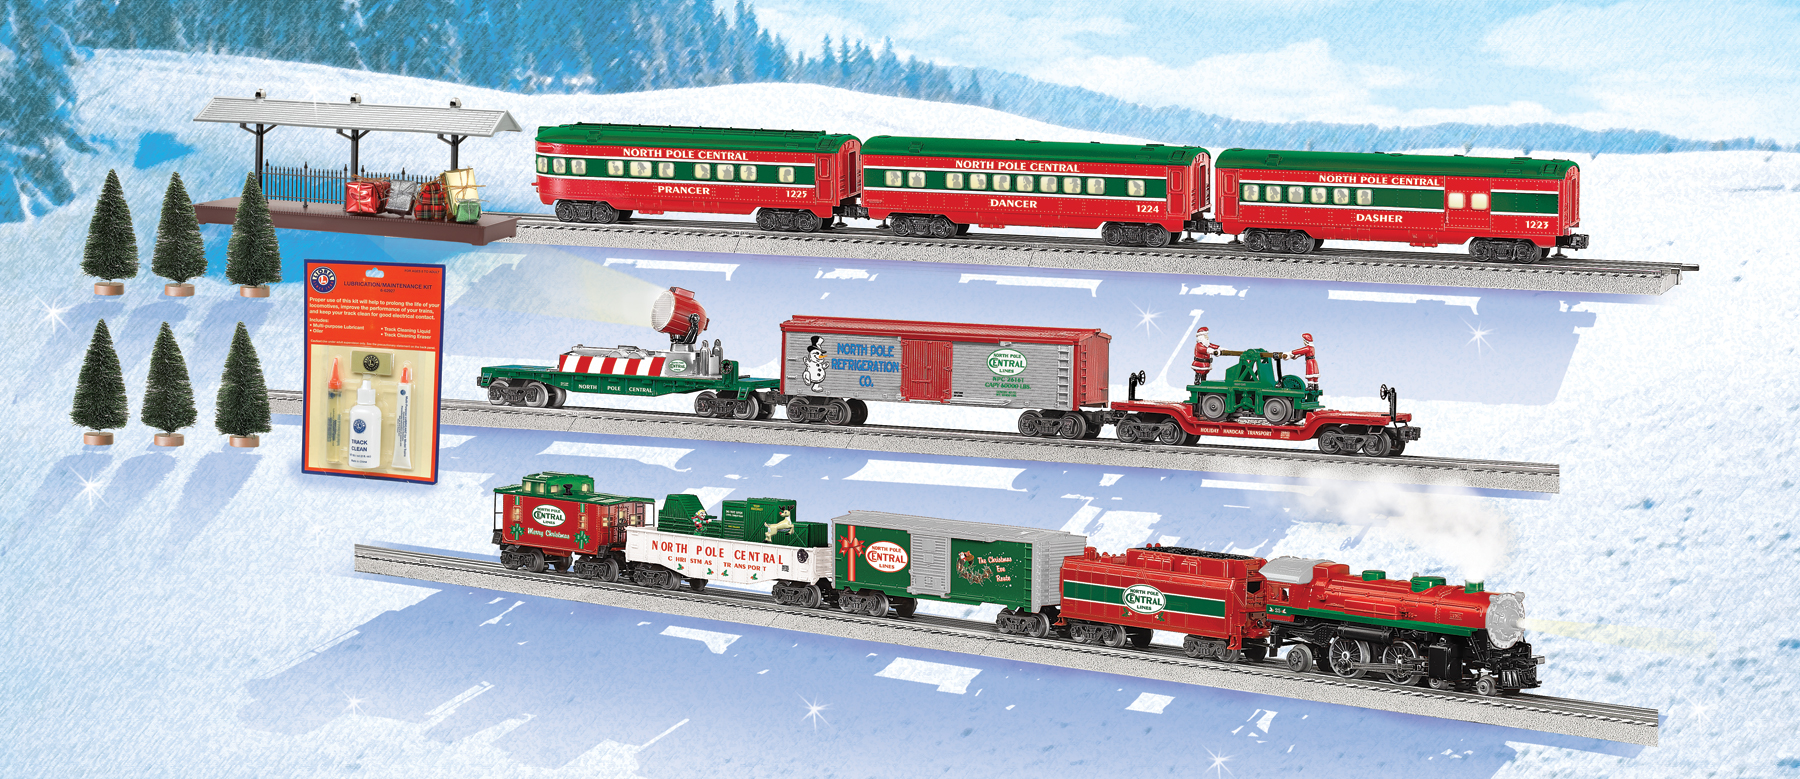 Lionel Christmas Train.North Pole Central Christmas Train Conventional 4 4 2 Steam